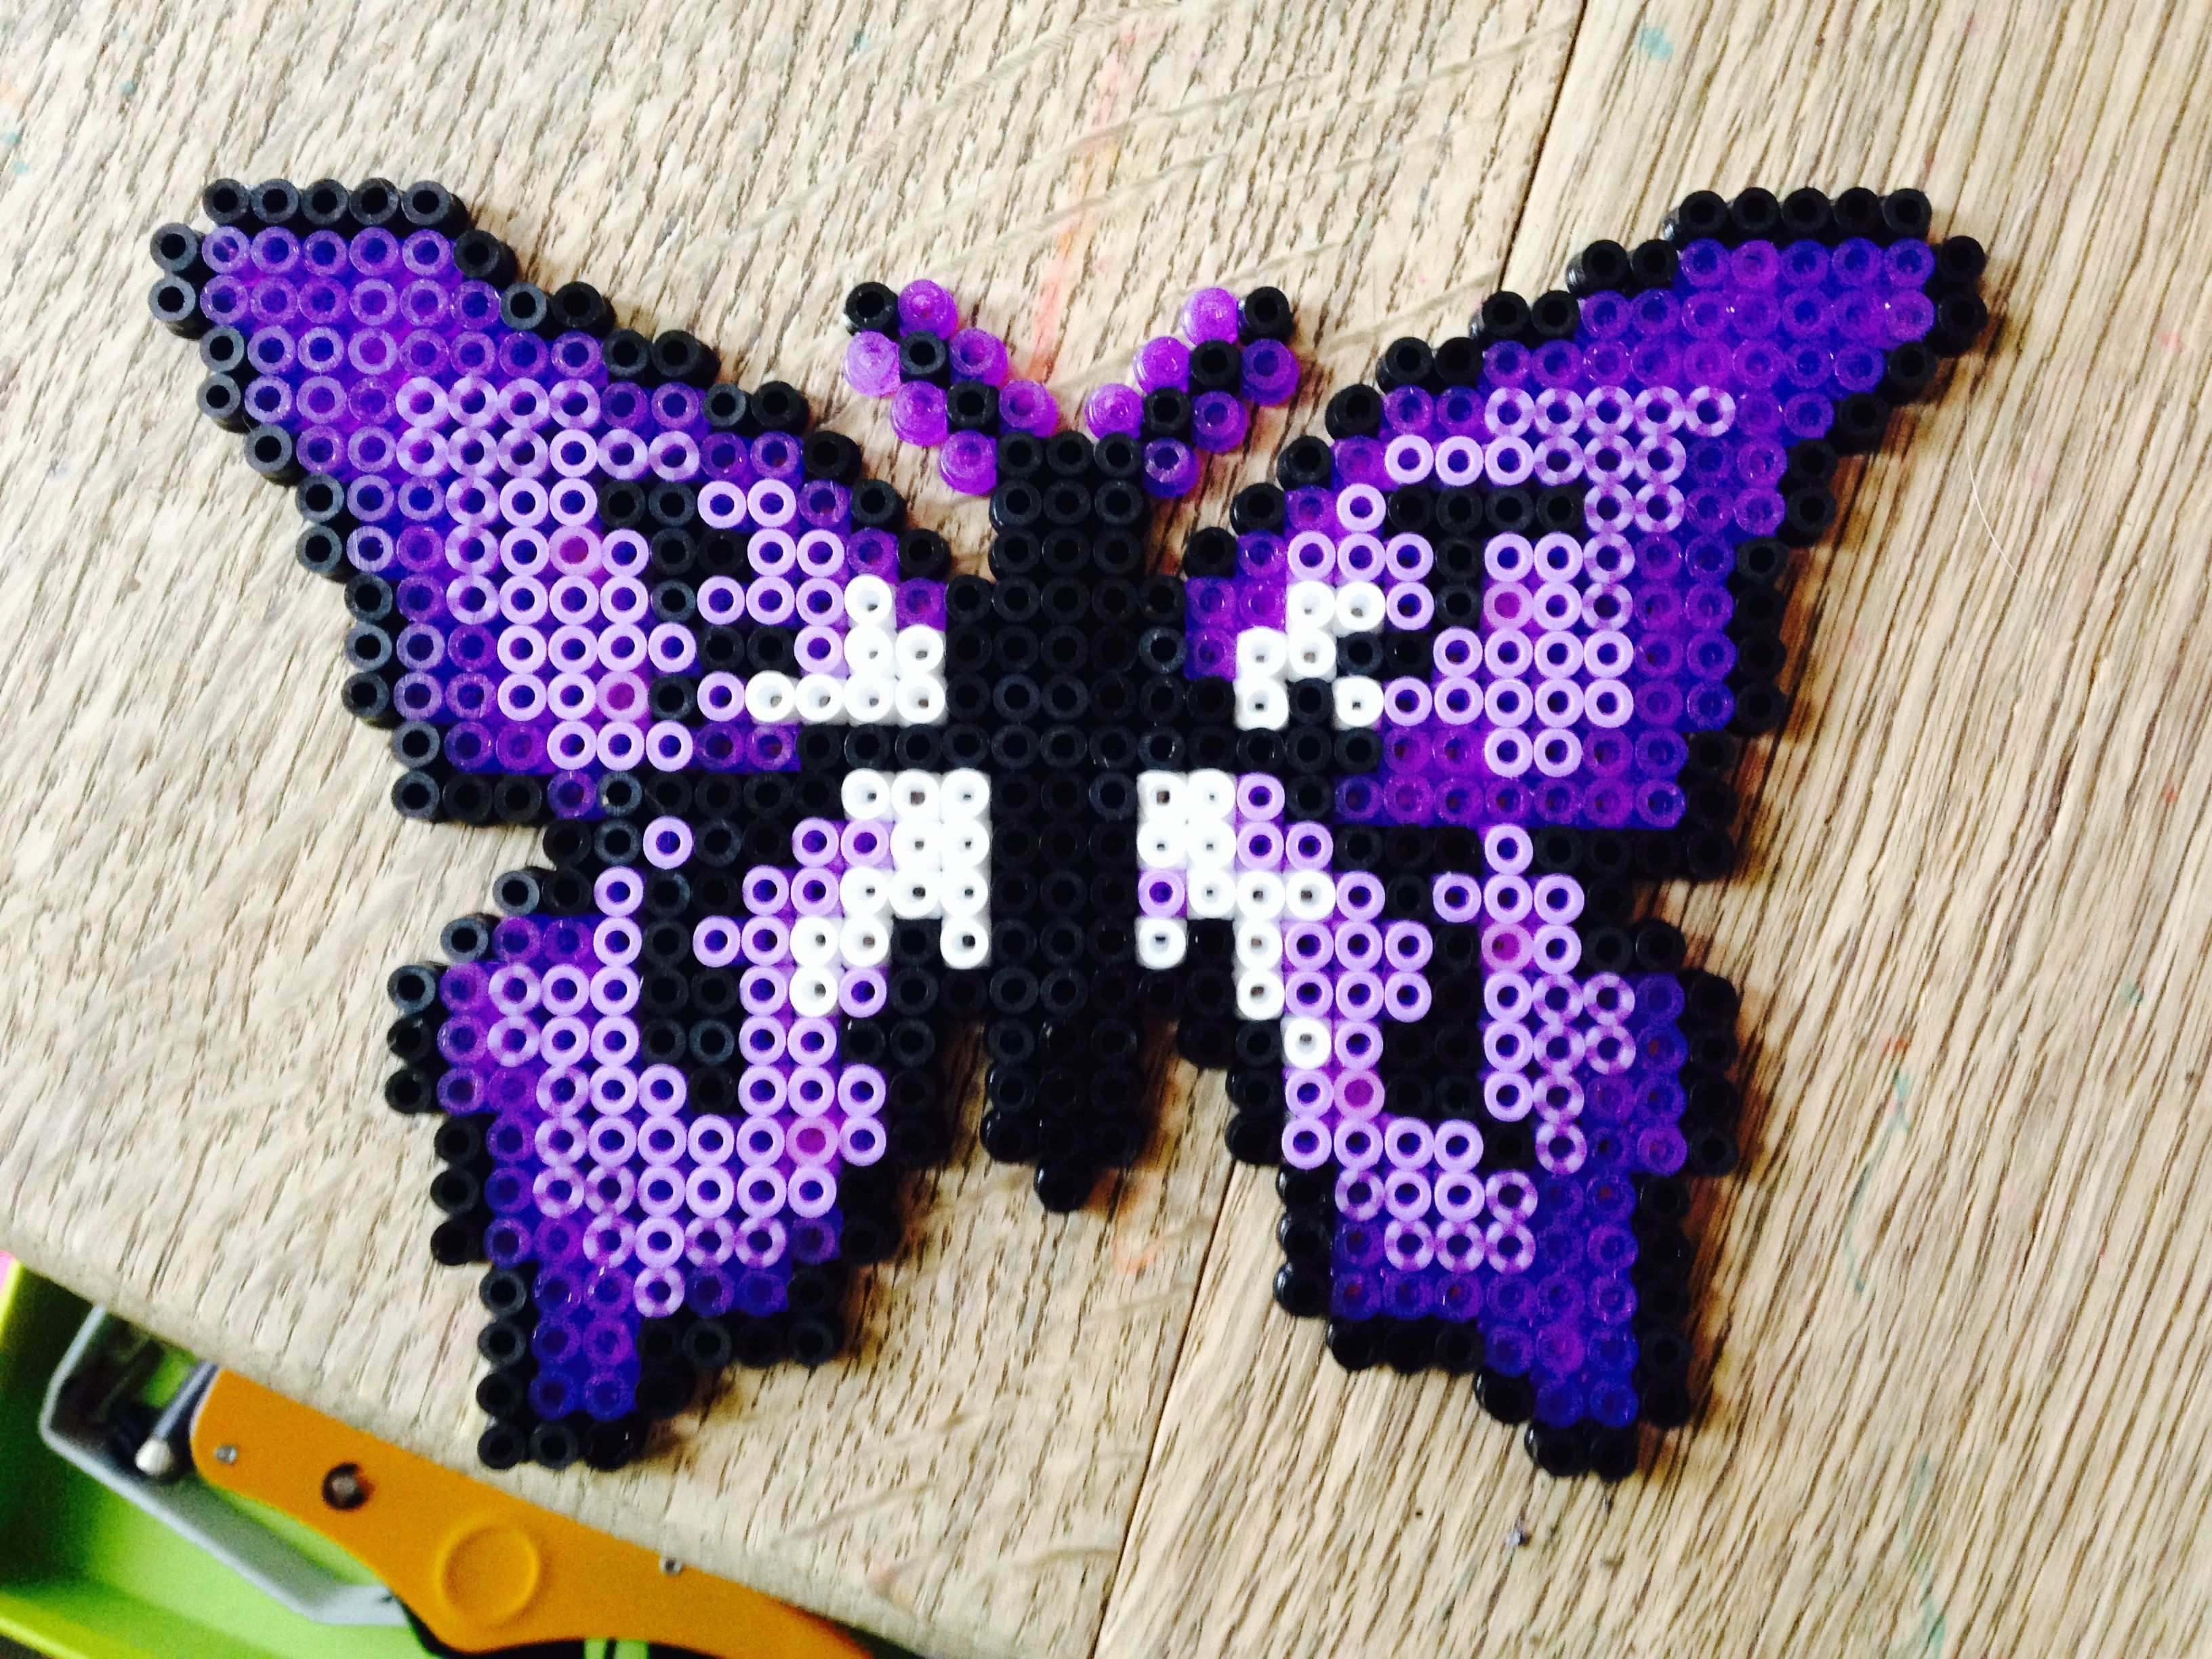 Butterfly Butterfly Butterfly Machinequilting Perlerbeads Quiltpatterns Quilting In 2020 Perler Bead Art Perler Bead Mario Hama Beads Patterns